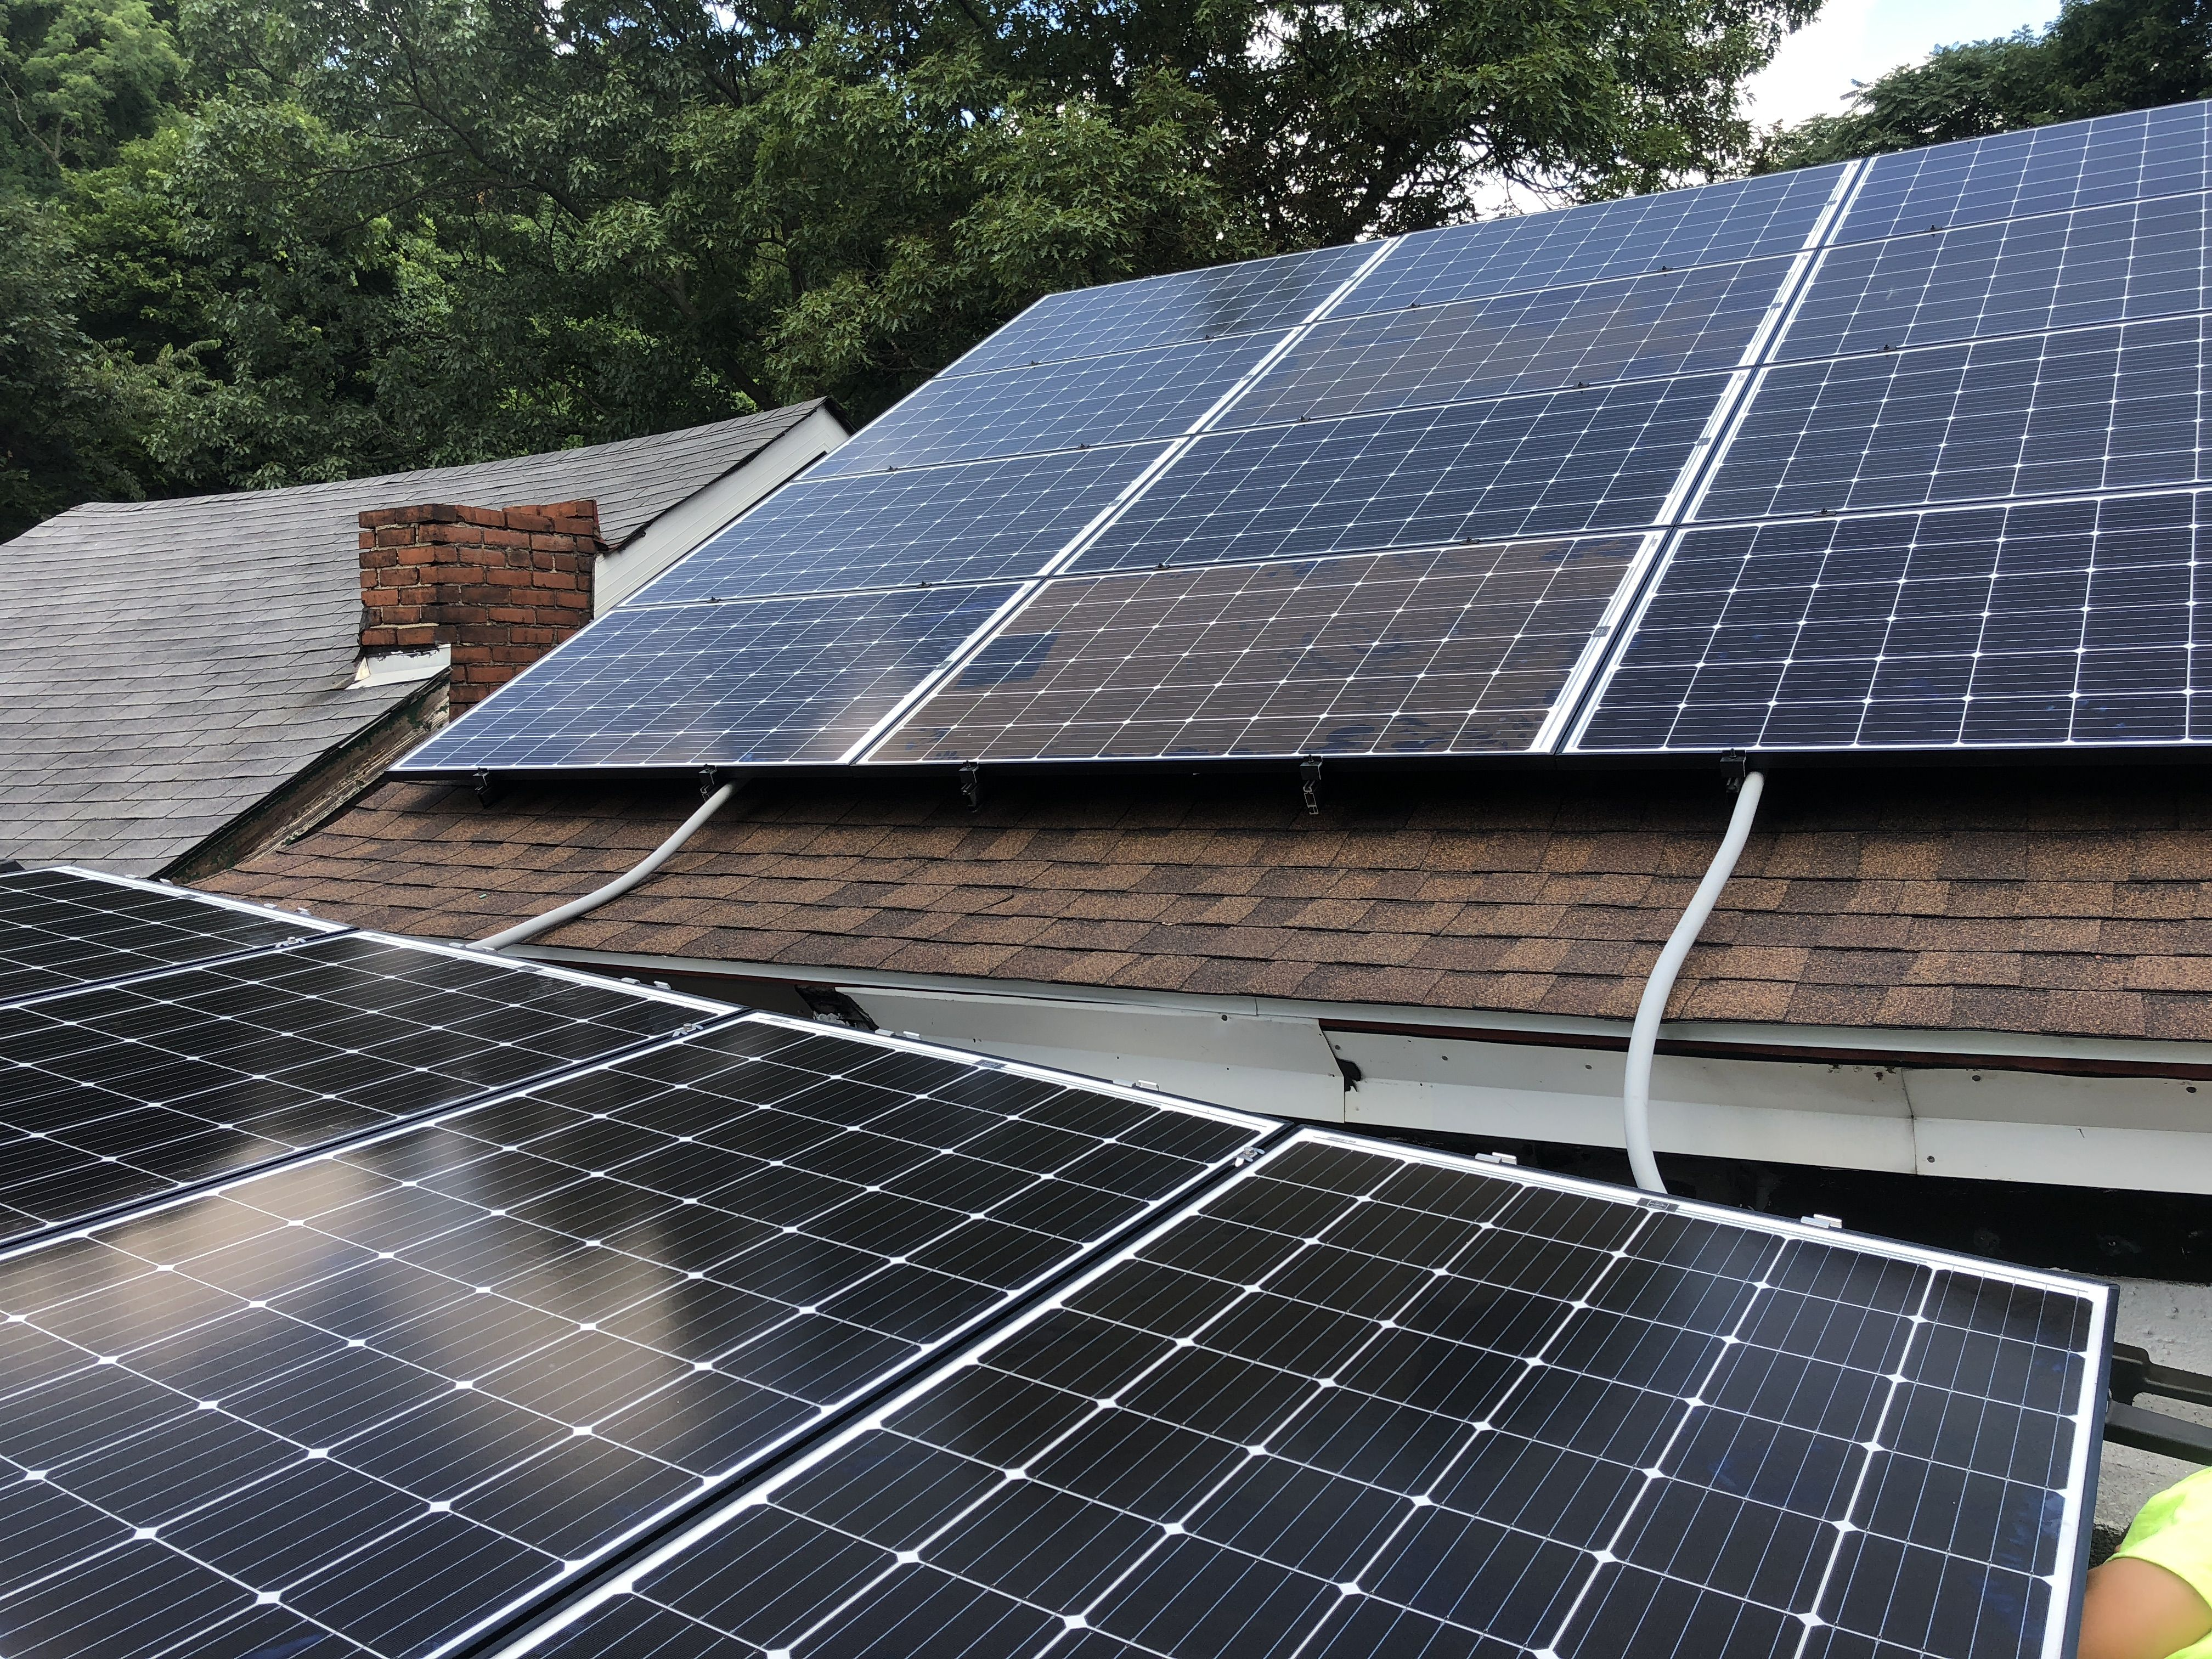 This New System Includes 16 Solarworld 300w Panels It Is Expected To Offset Their Electricity Bill By 85 If You Are In Solar Panel Cost Solar Solar Panels